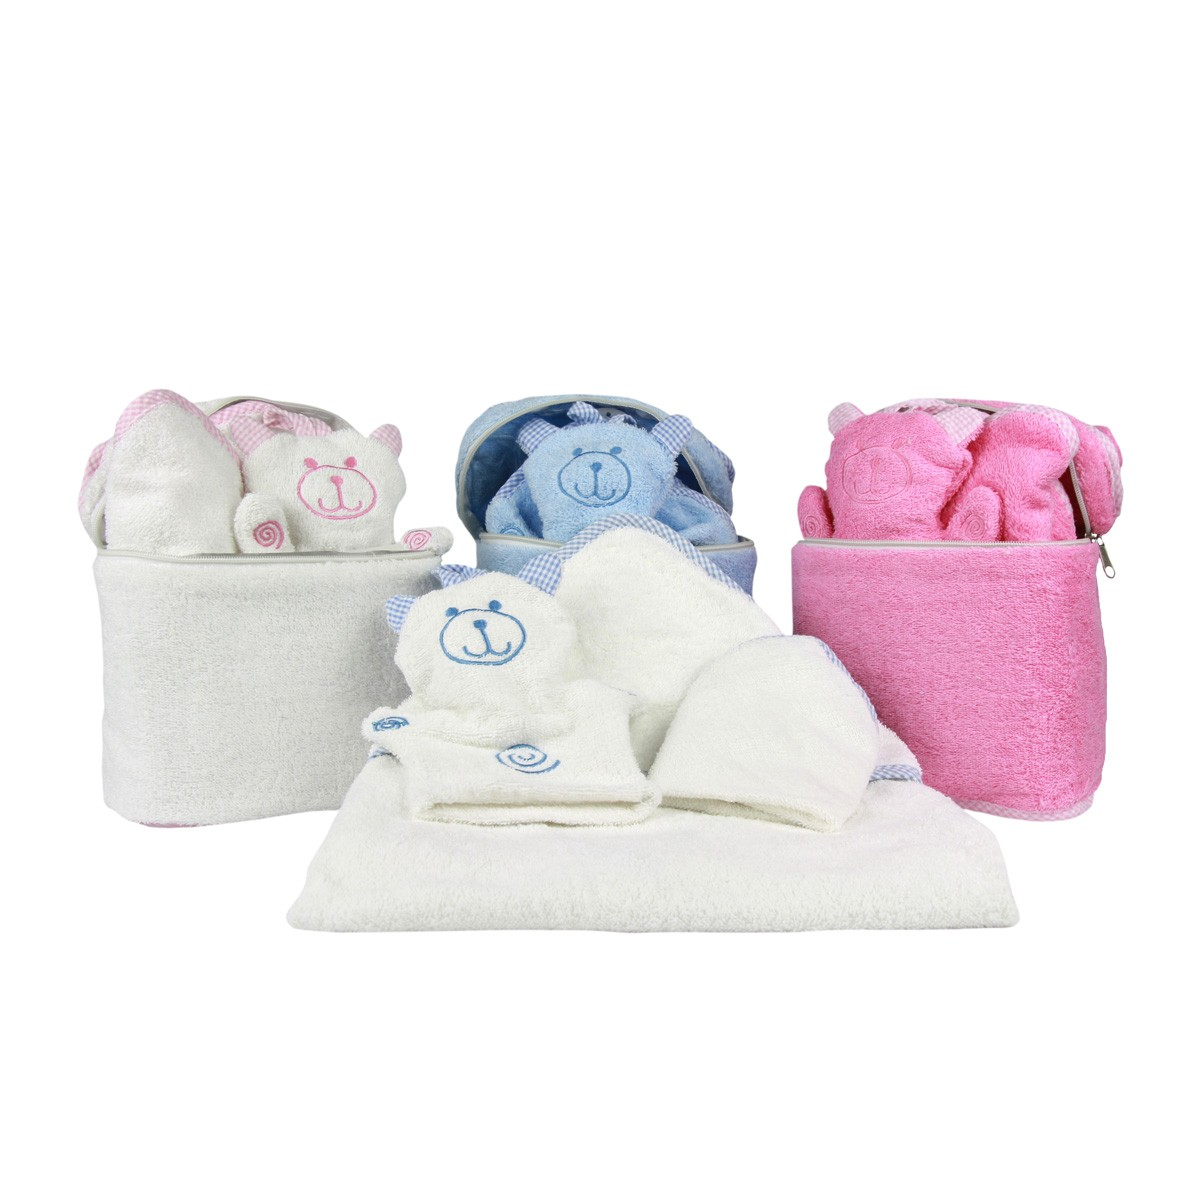 Quirky Baby Gift Ideas : Creative unique baby gifts for expecting mothers